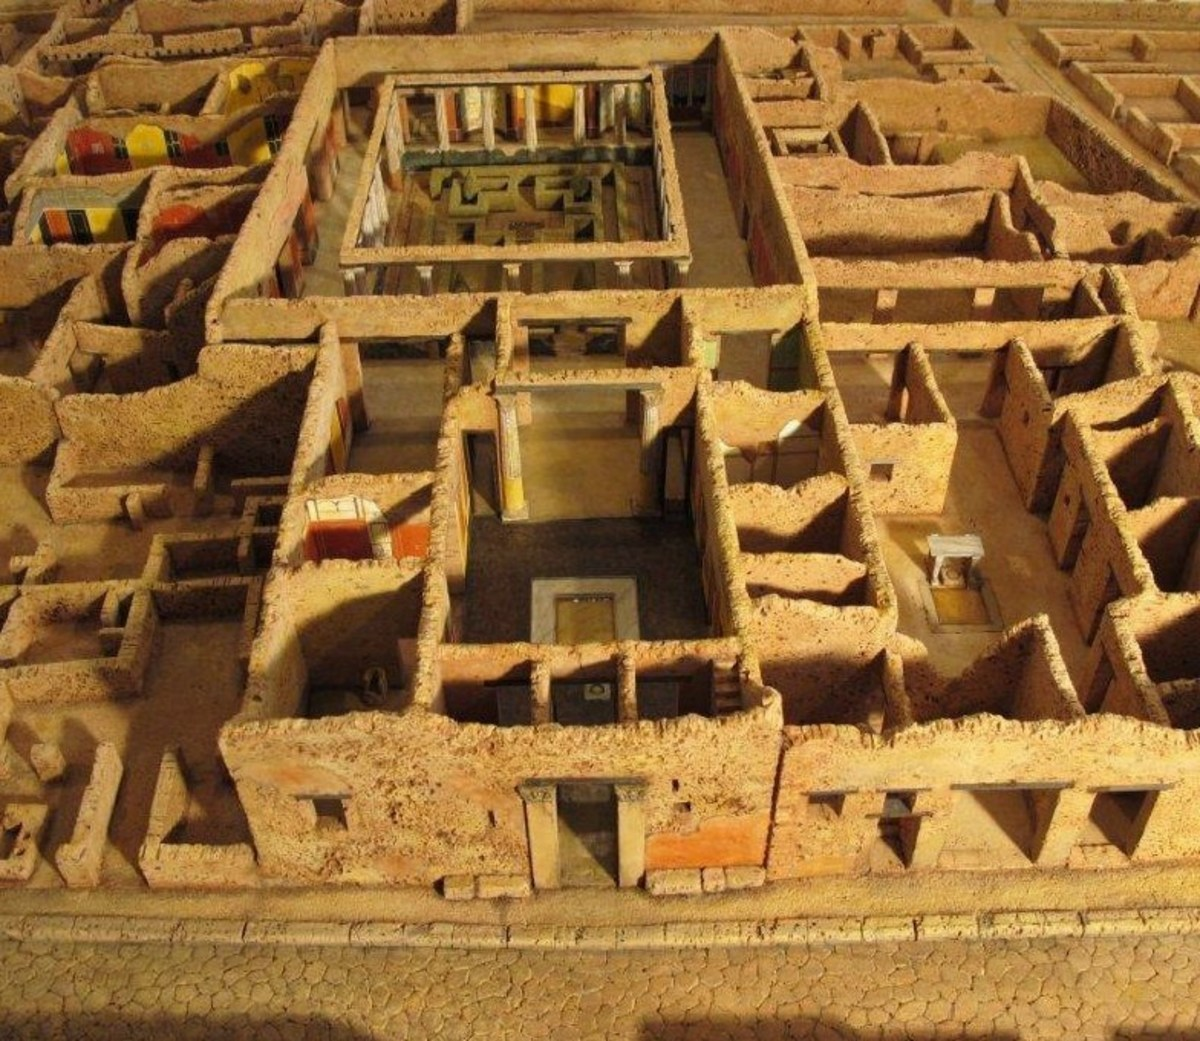 This is a scale model of Pompeii. The Ancient Romans were the first to develop the 'bricks and mortar' building combination which we still use today.